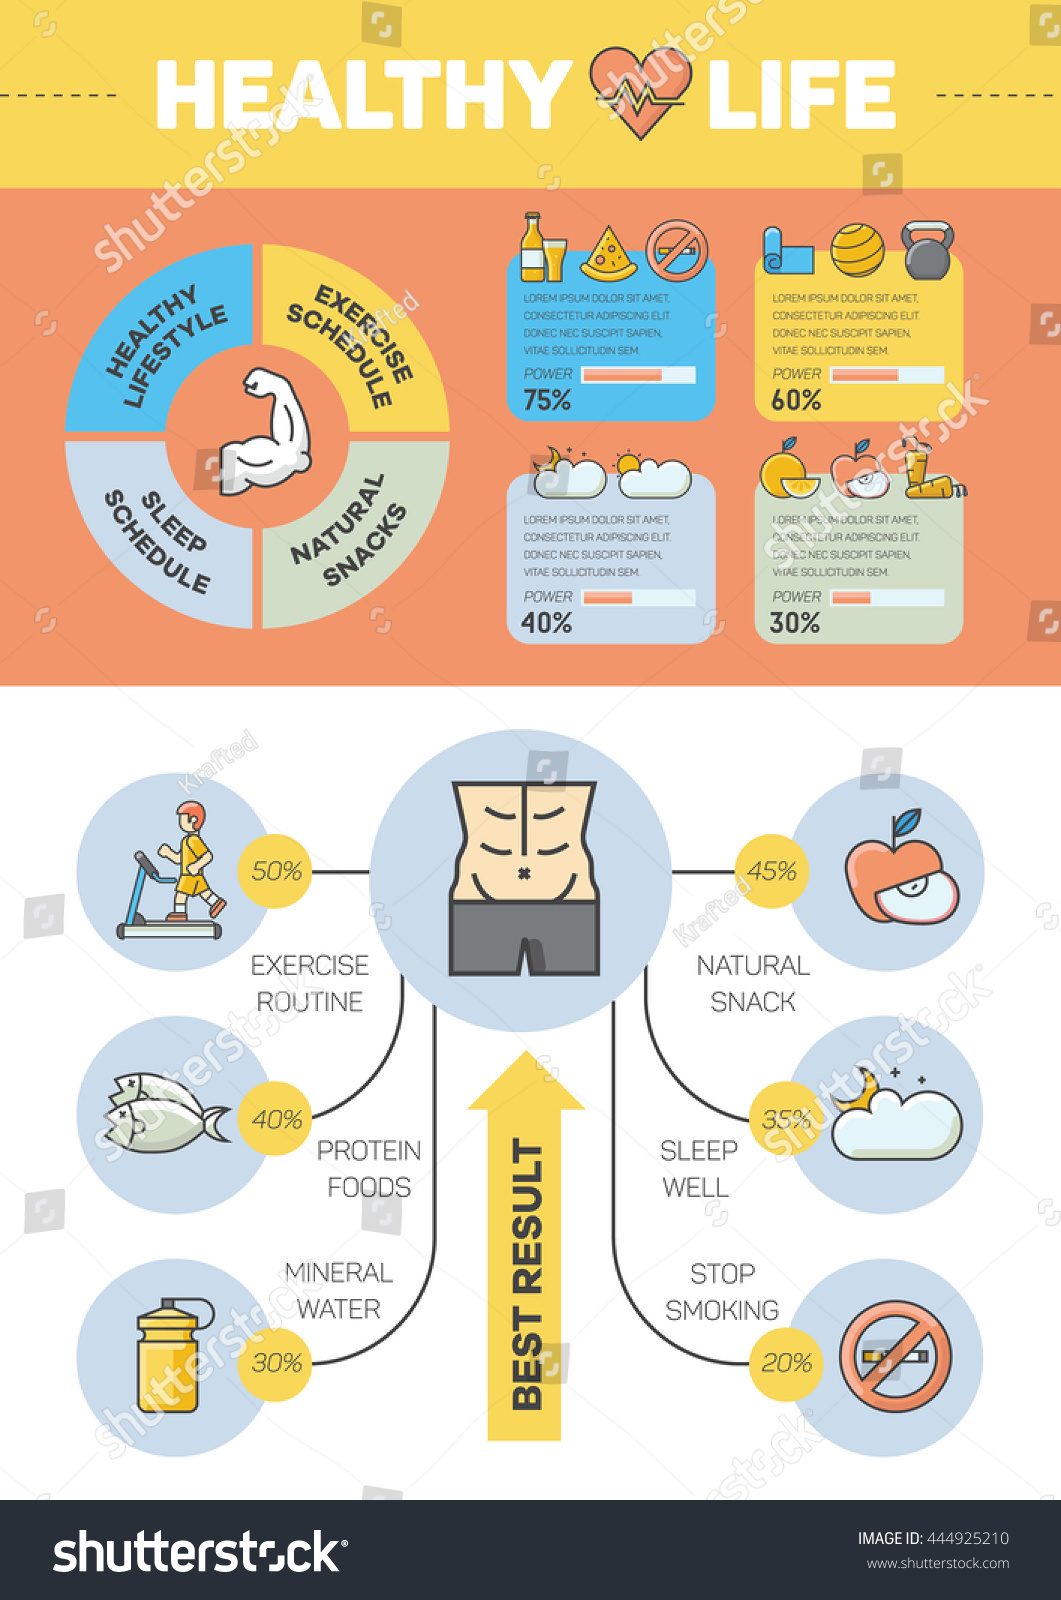 Flat Design Infographic About Healthy Life Stock Vector 444925210 ...